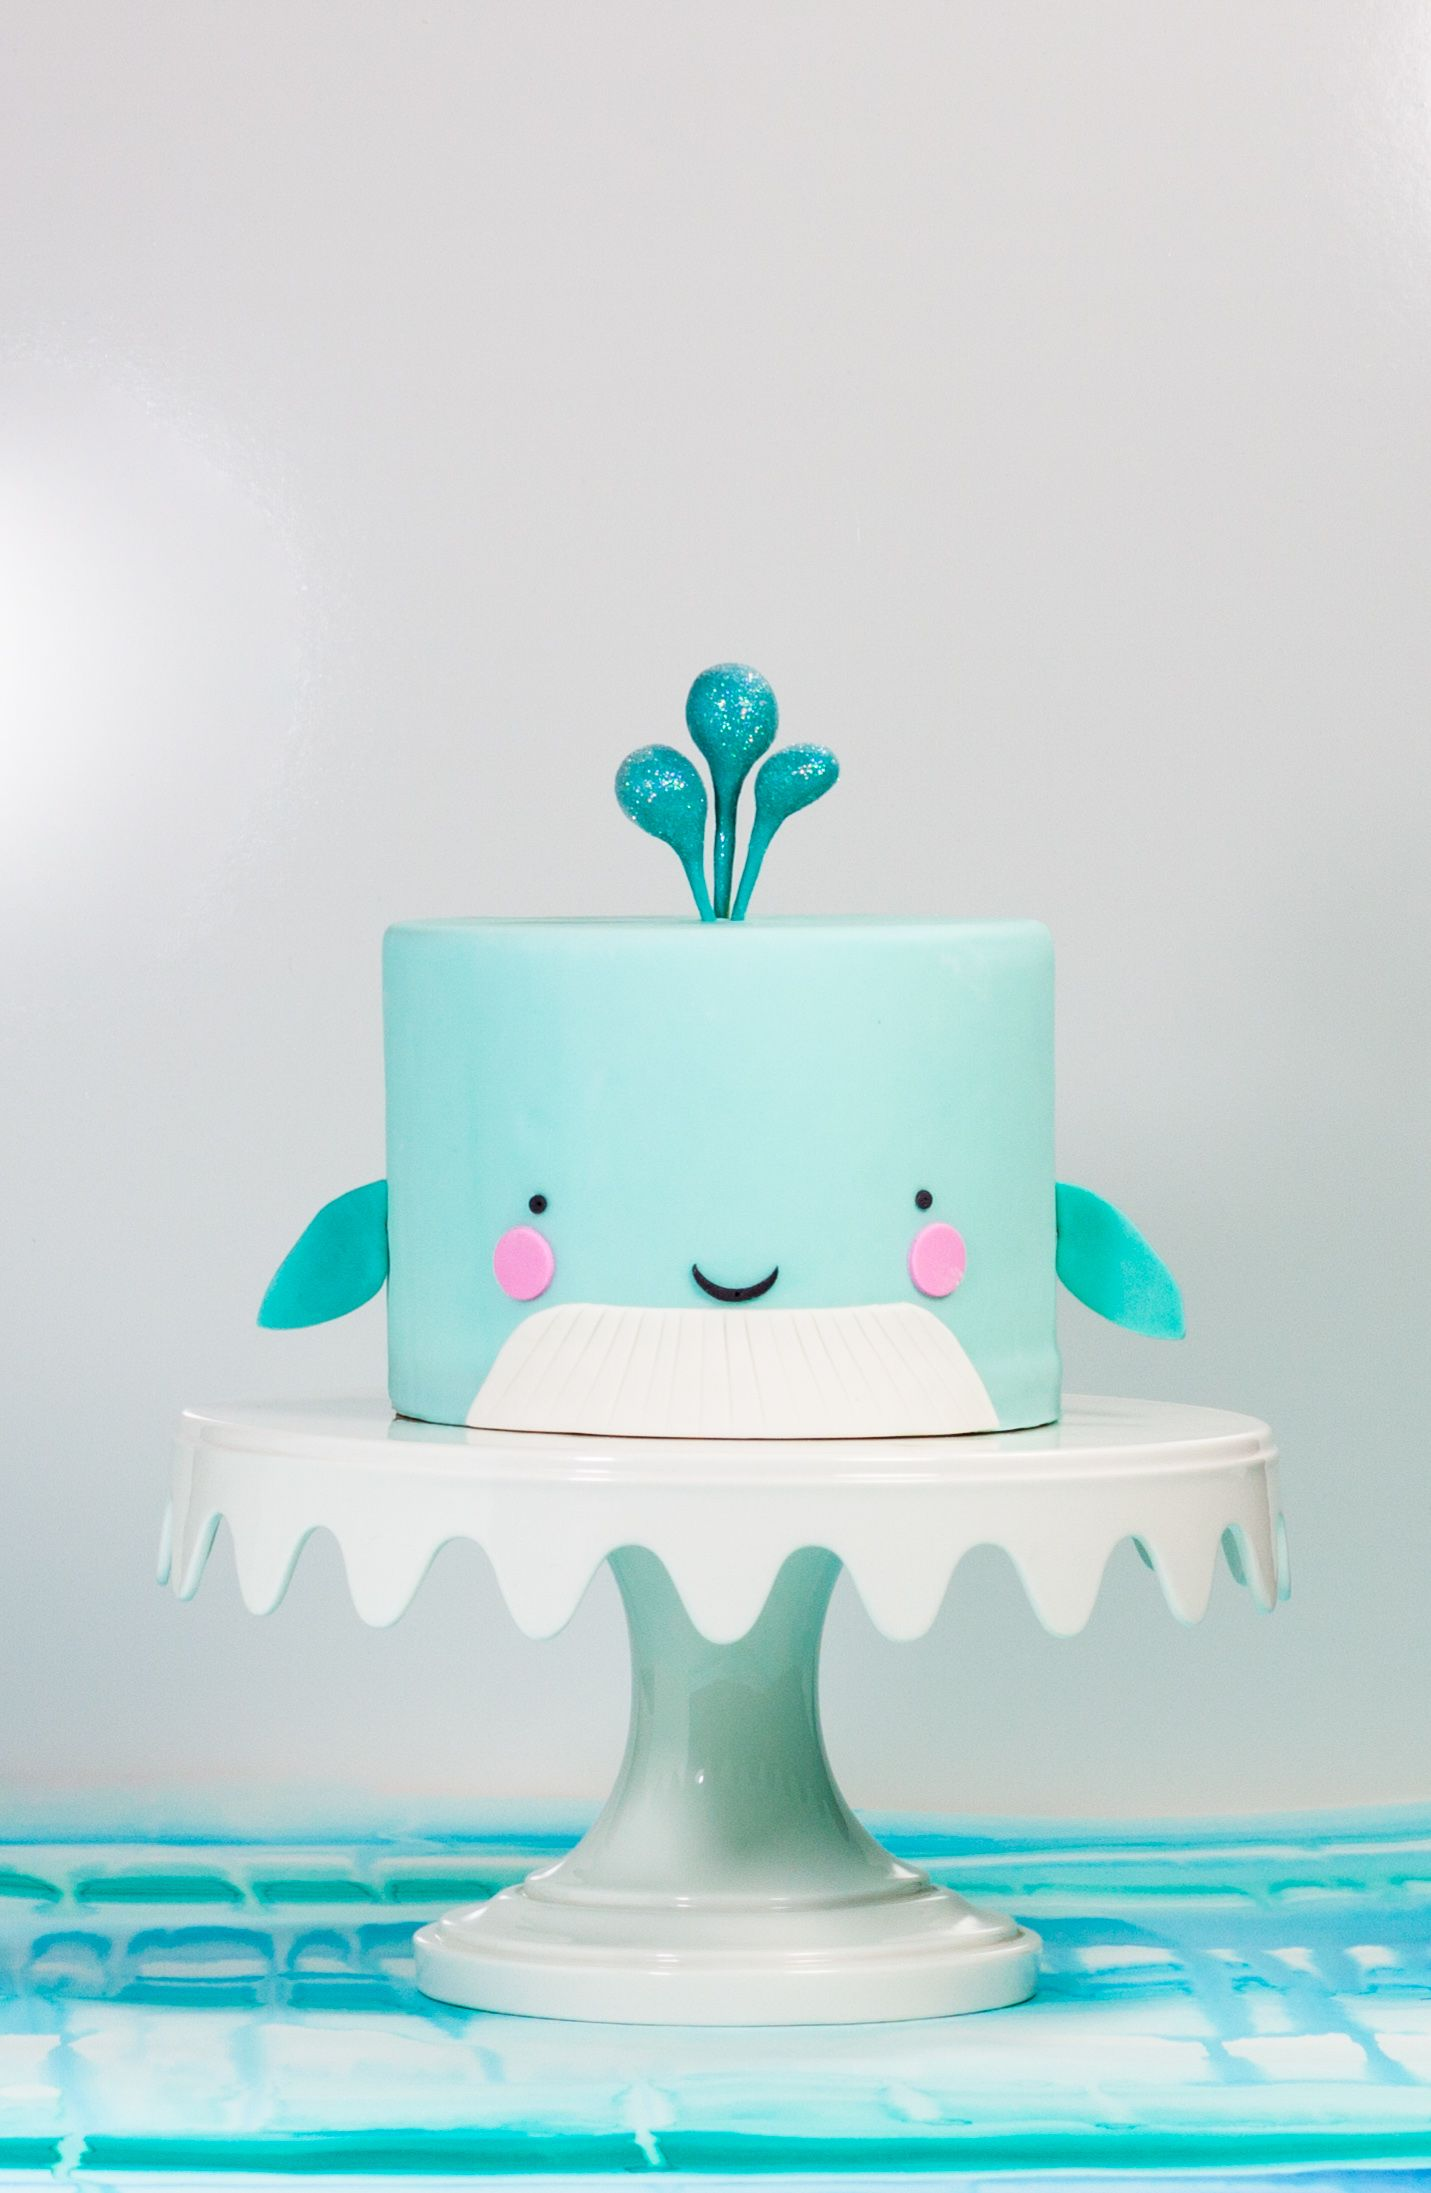 Whale Cake By Whipped Bake In Philadelphia Adorable Idea For An Ocean Mermaid Or Sea Animal Themed Birthday Party So Cute